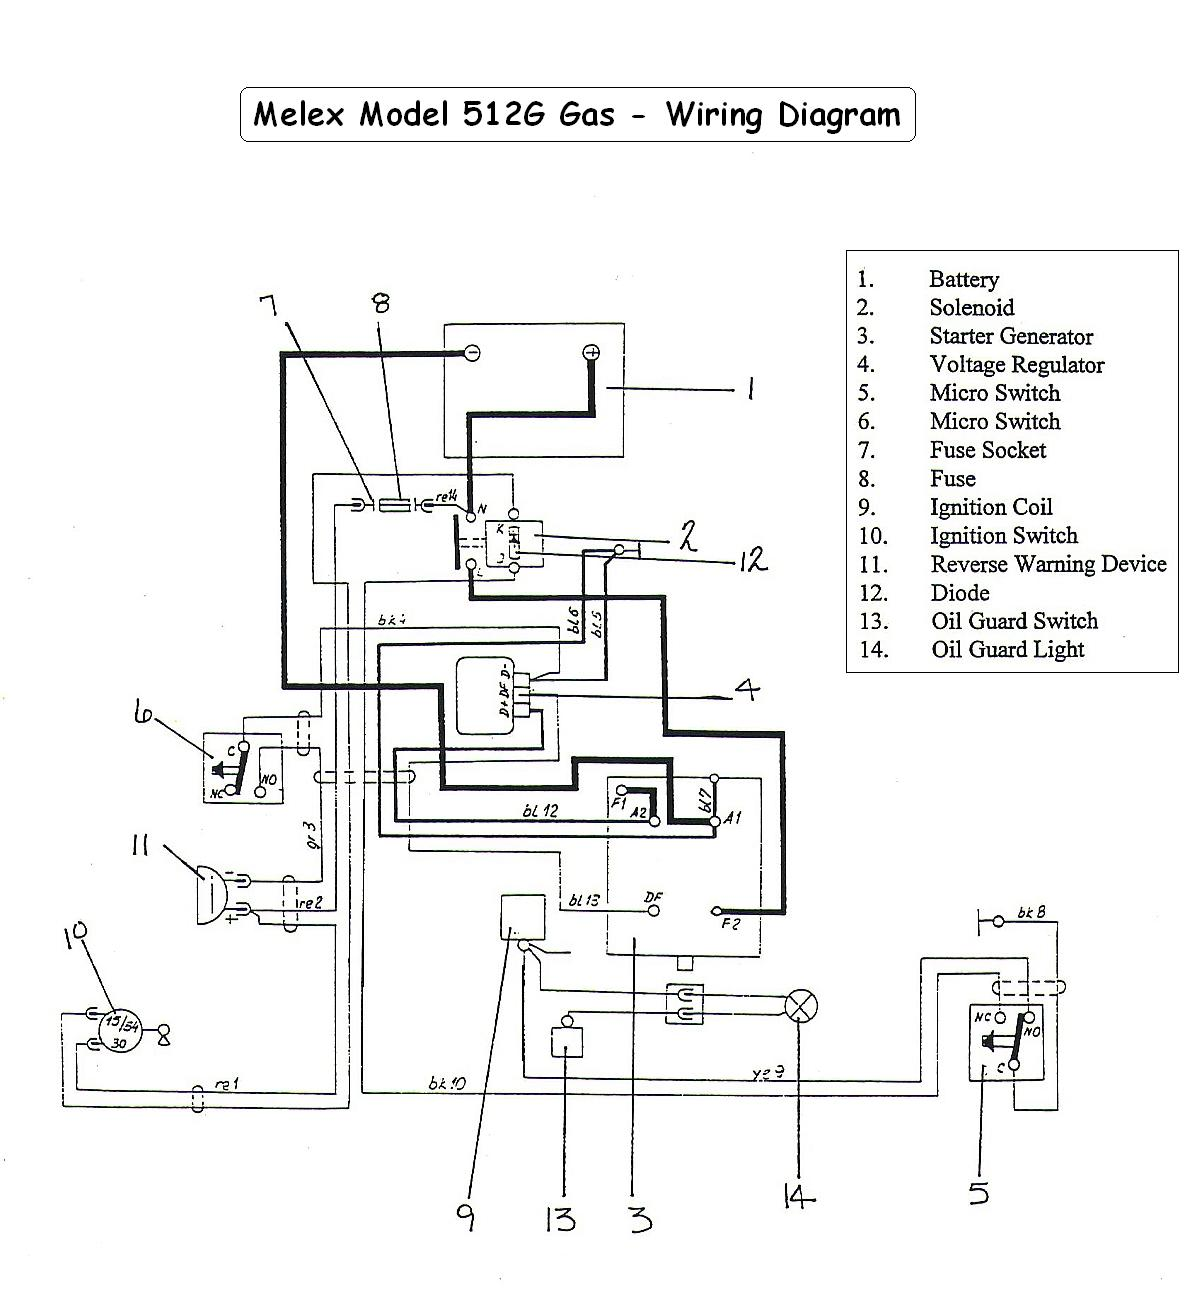 Melex512G_wiring_diagram vintagegolfcartparts com club car ignition switch wiring diagram at fashall.co